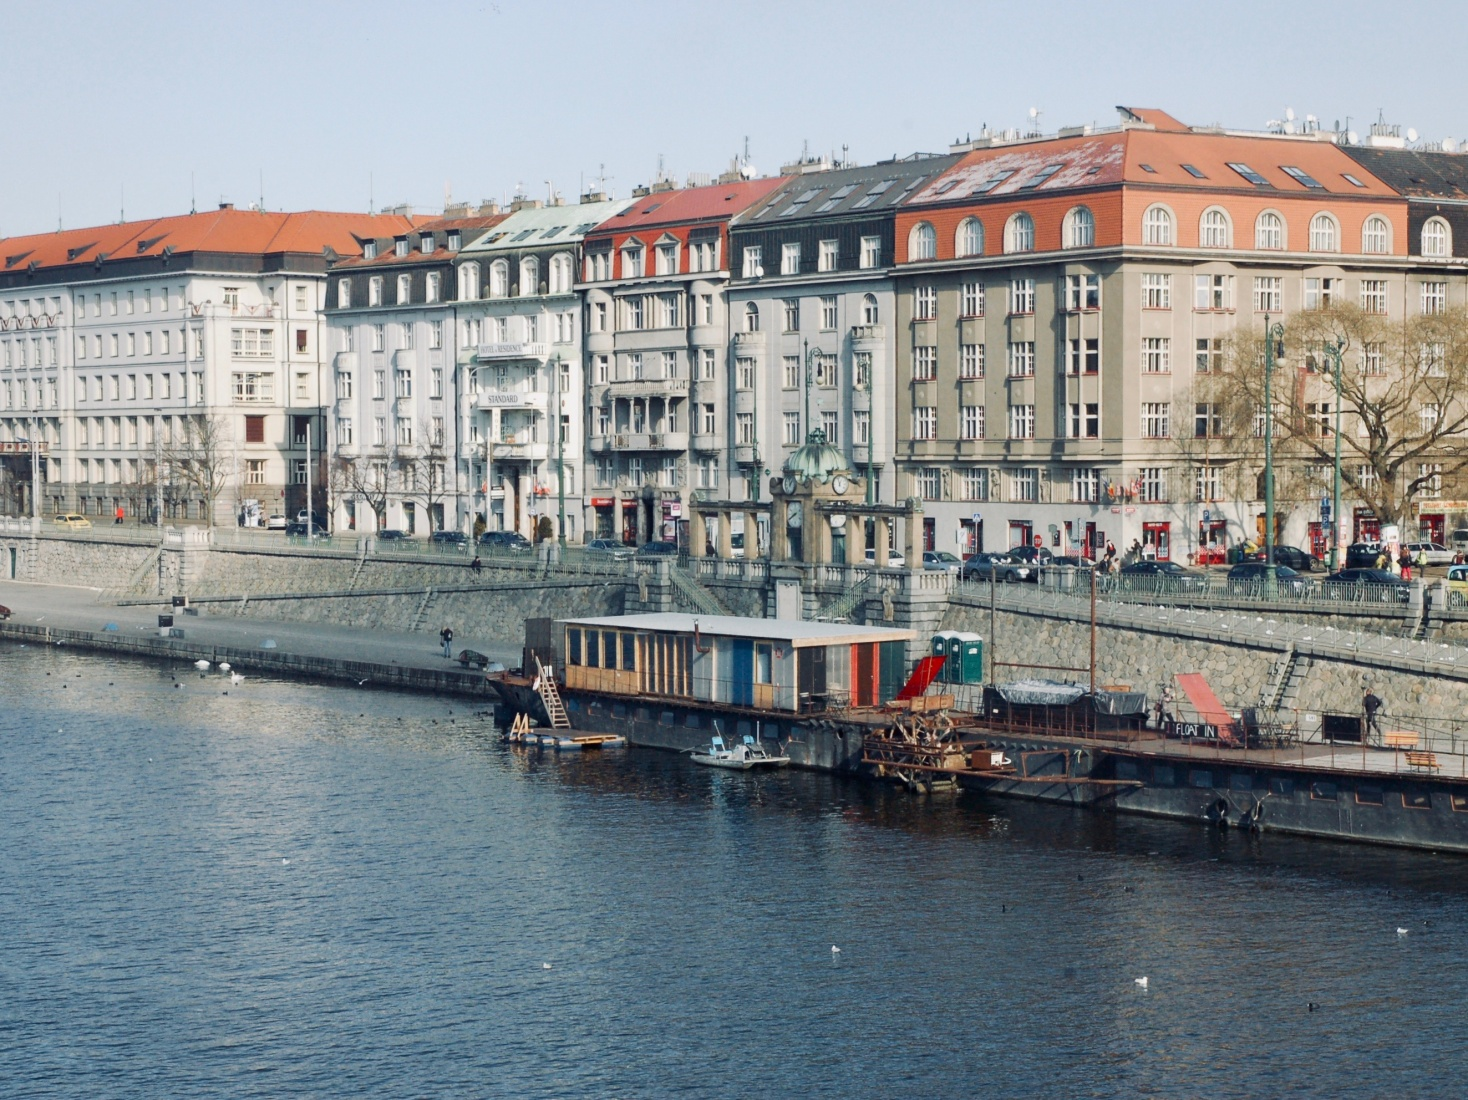 Neoclassical architecture in townhouses along the Vltava River in Prague, built in the 19th century.